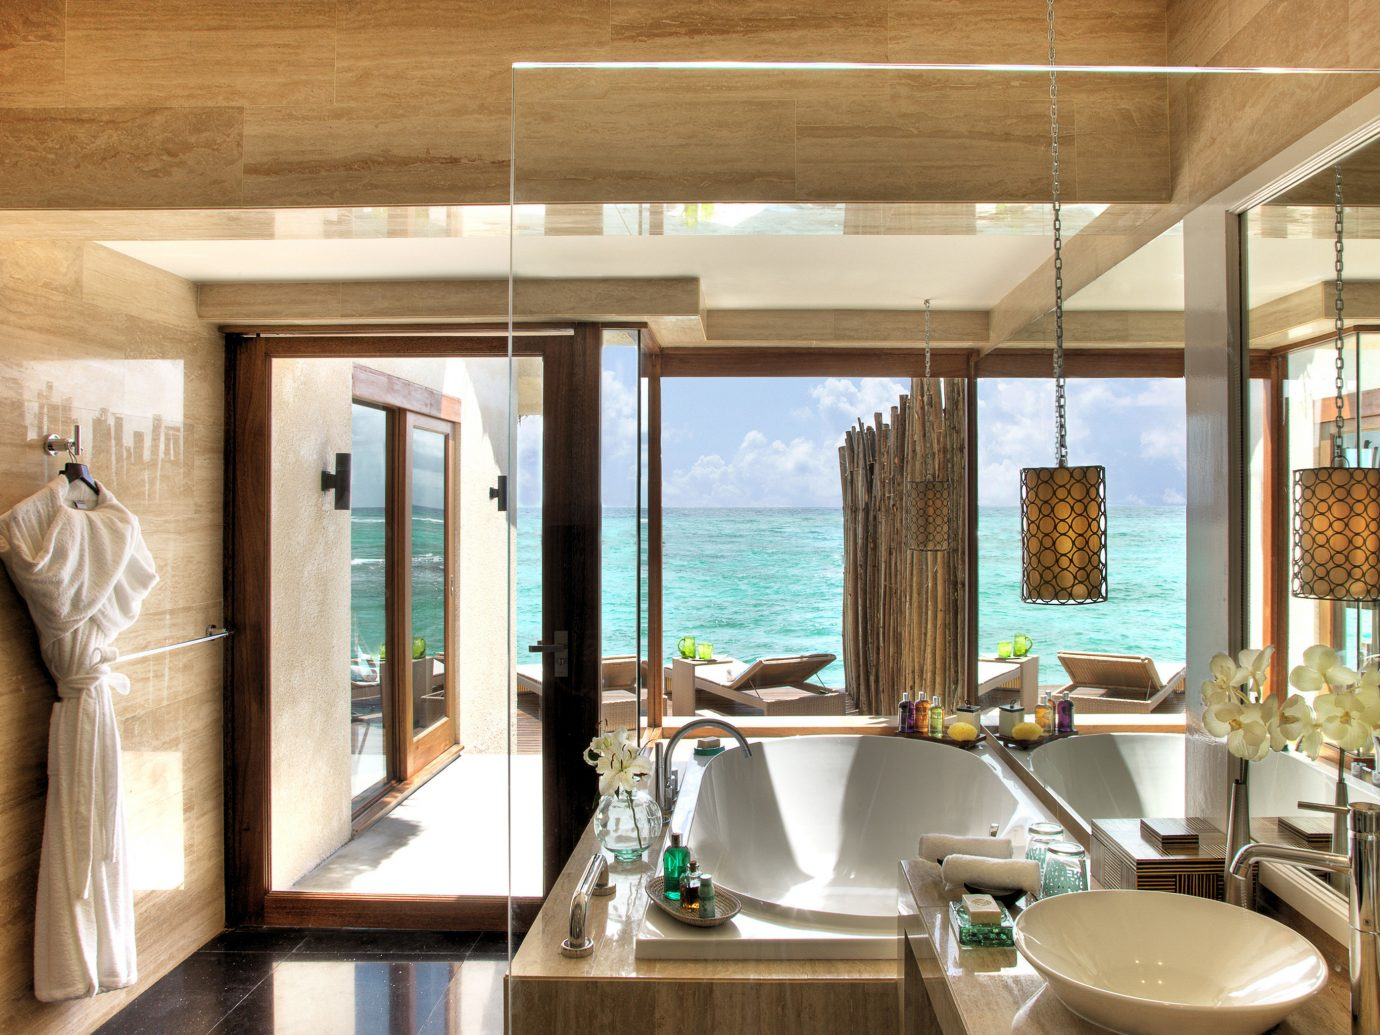 Beachfront Bedroom Family Hotels Living Resort Scenic views Villa indoor room property window estate home ceiling sink interior design swimming pool bathroom Design restaurant Suite dining room tub Island